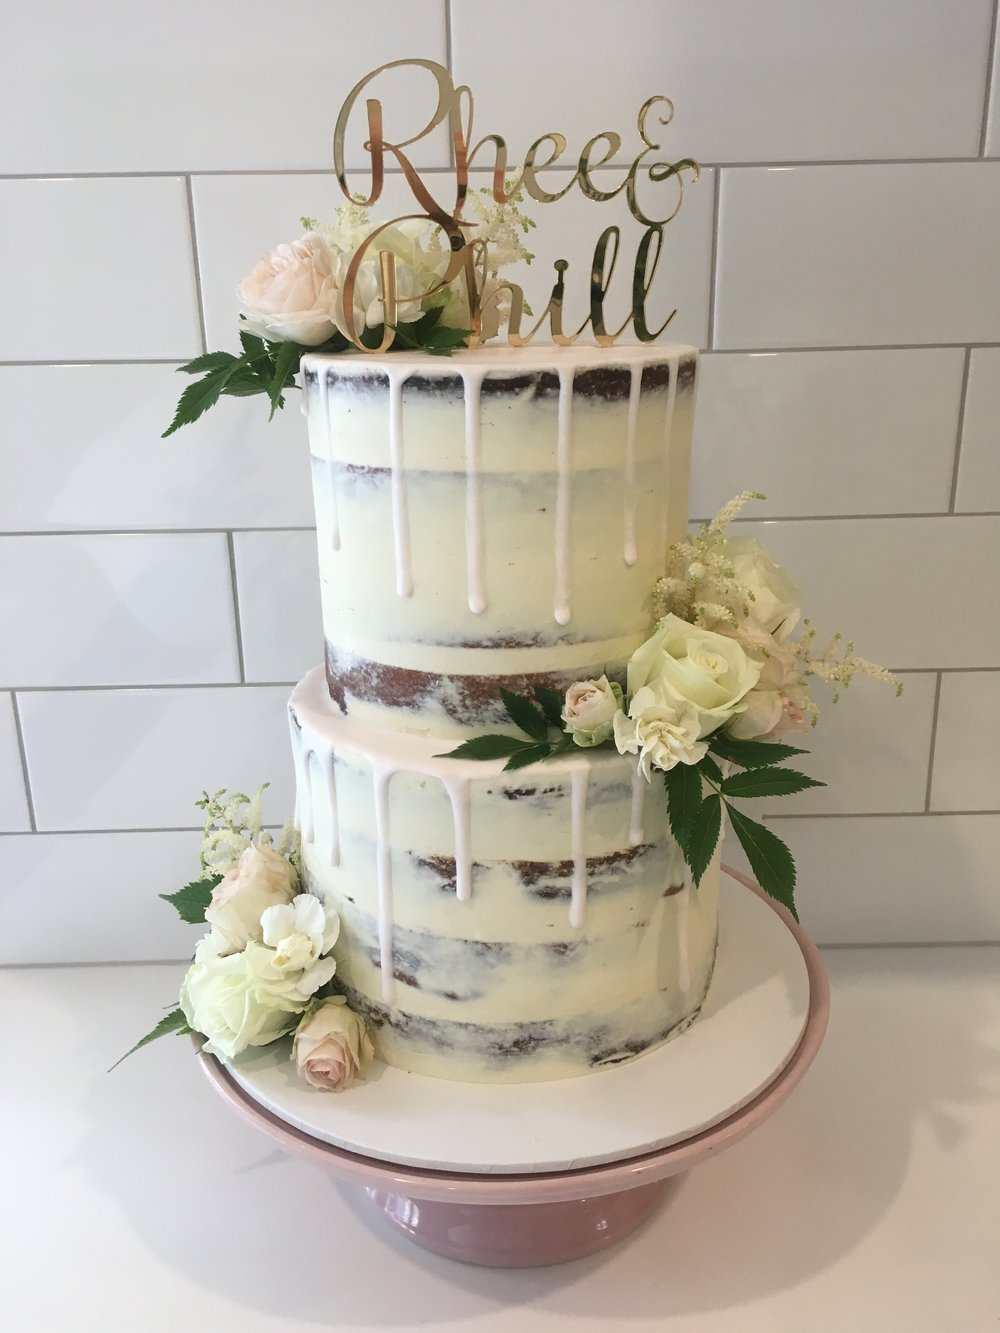 Naked Cake with Drip